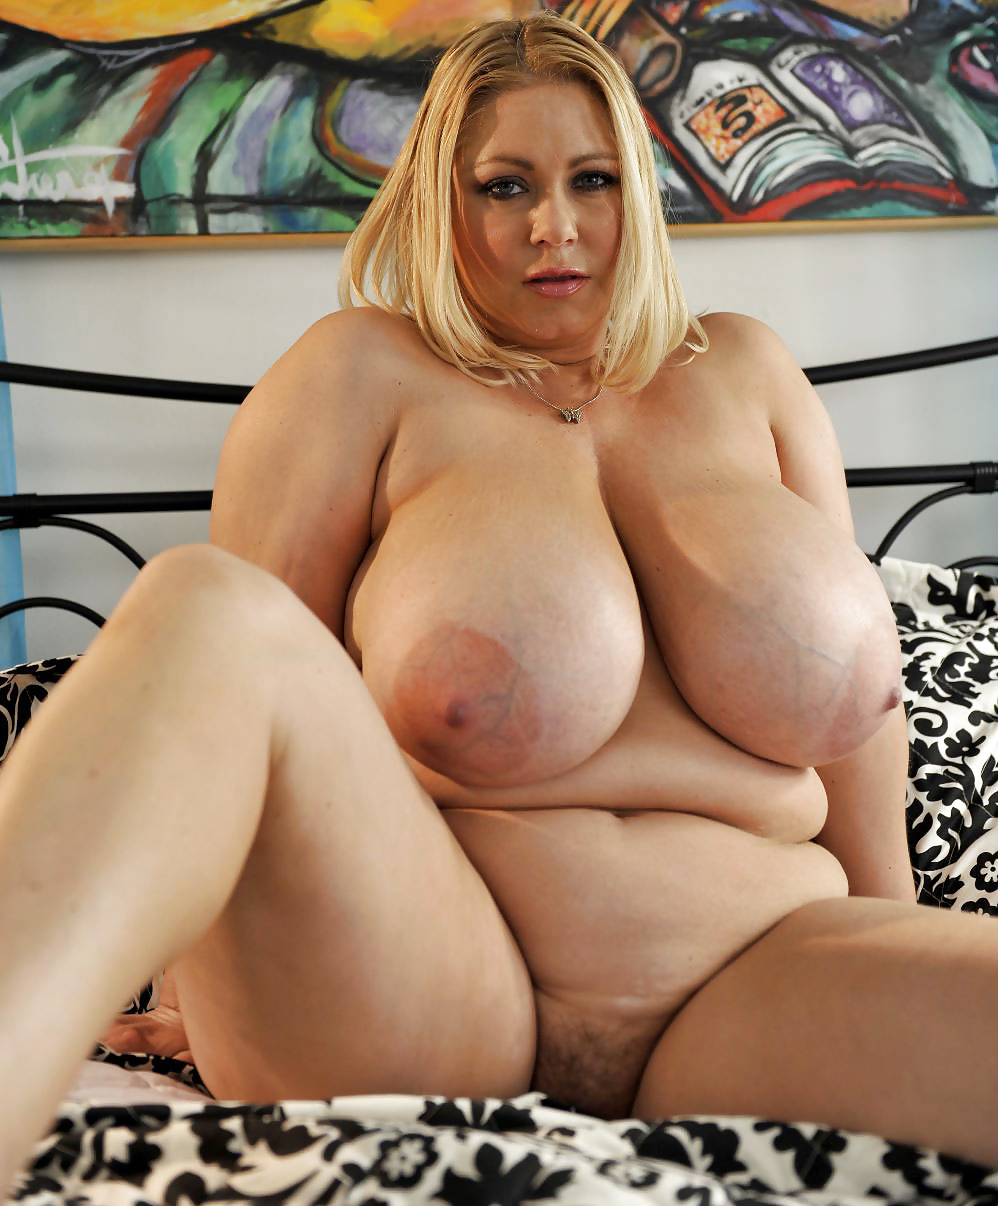 incontri con donne bbw video poeno gratis